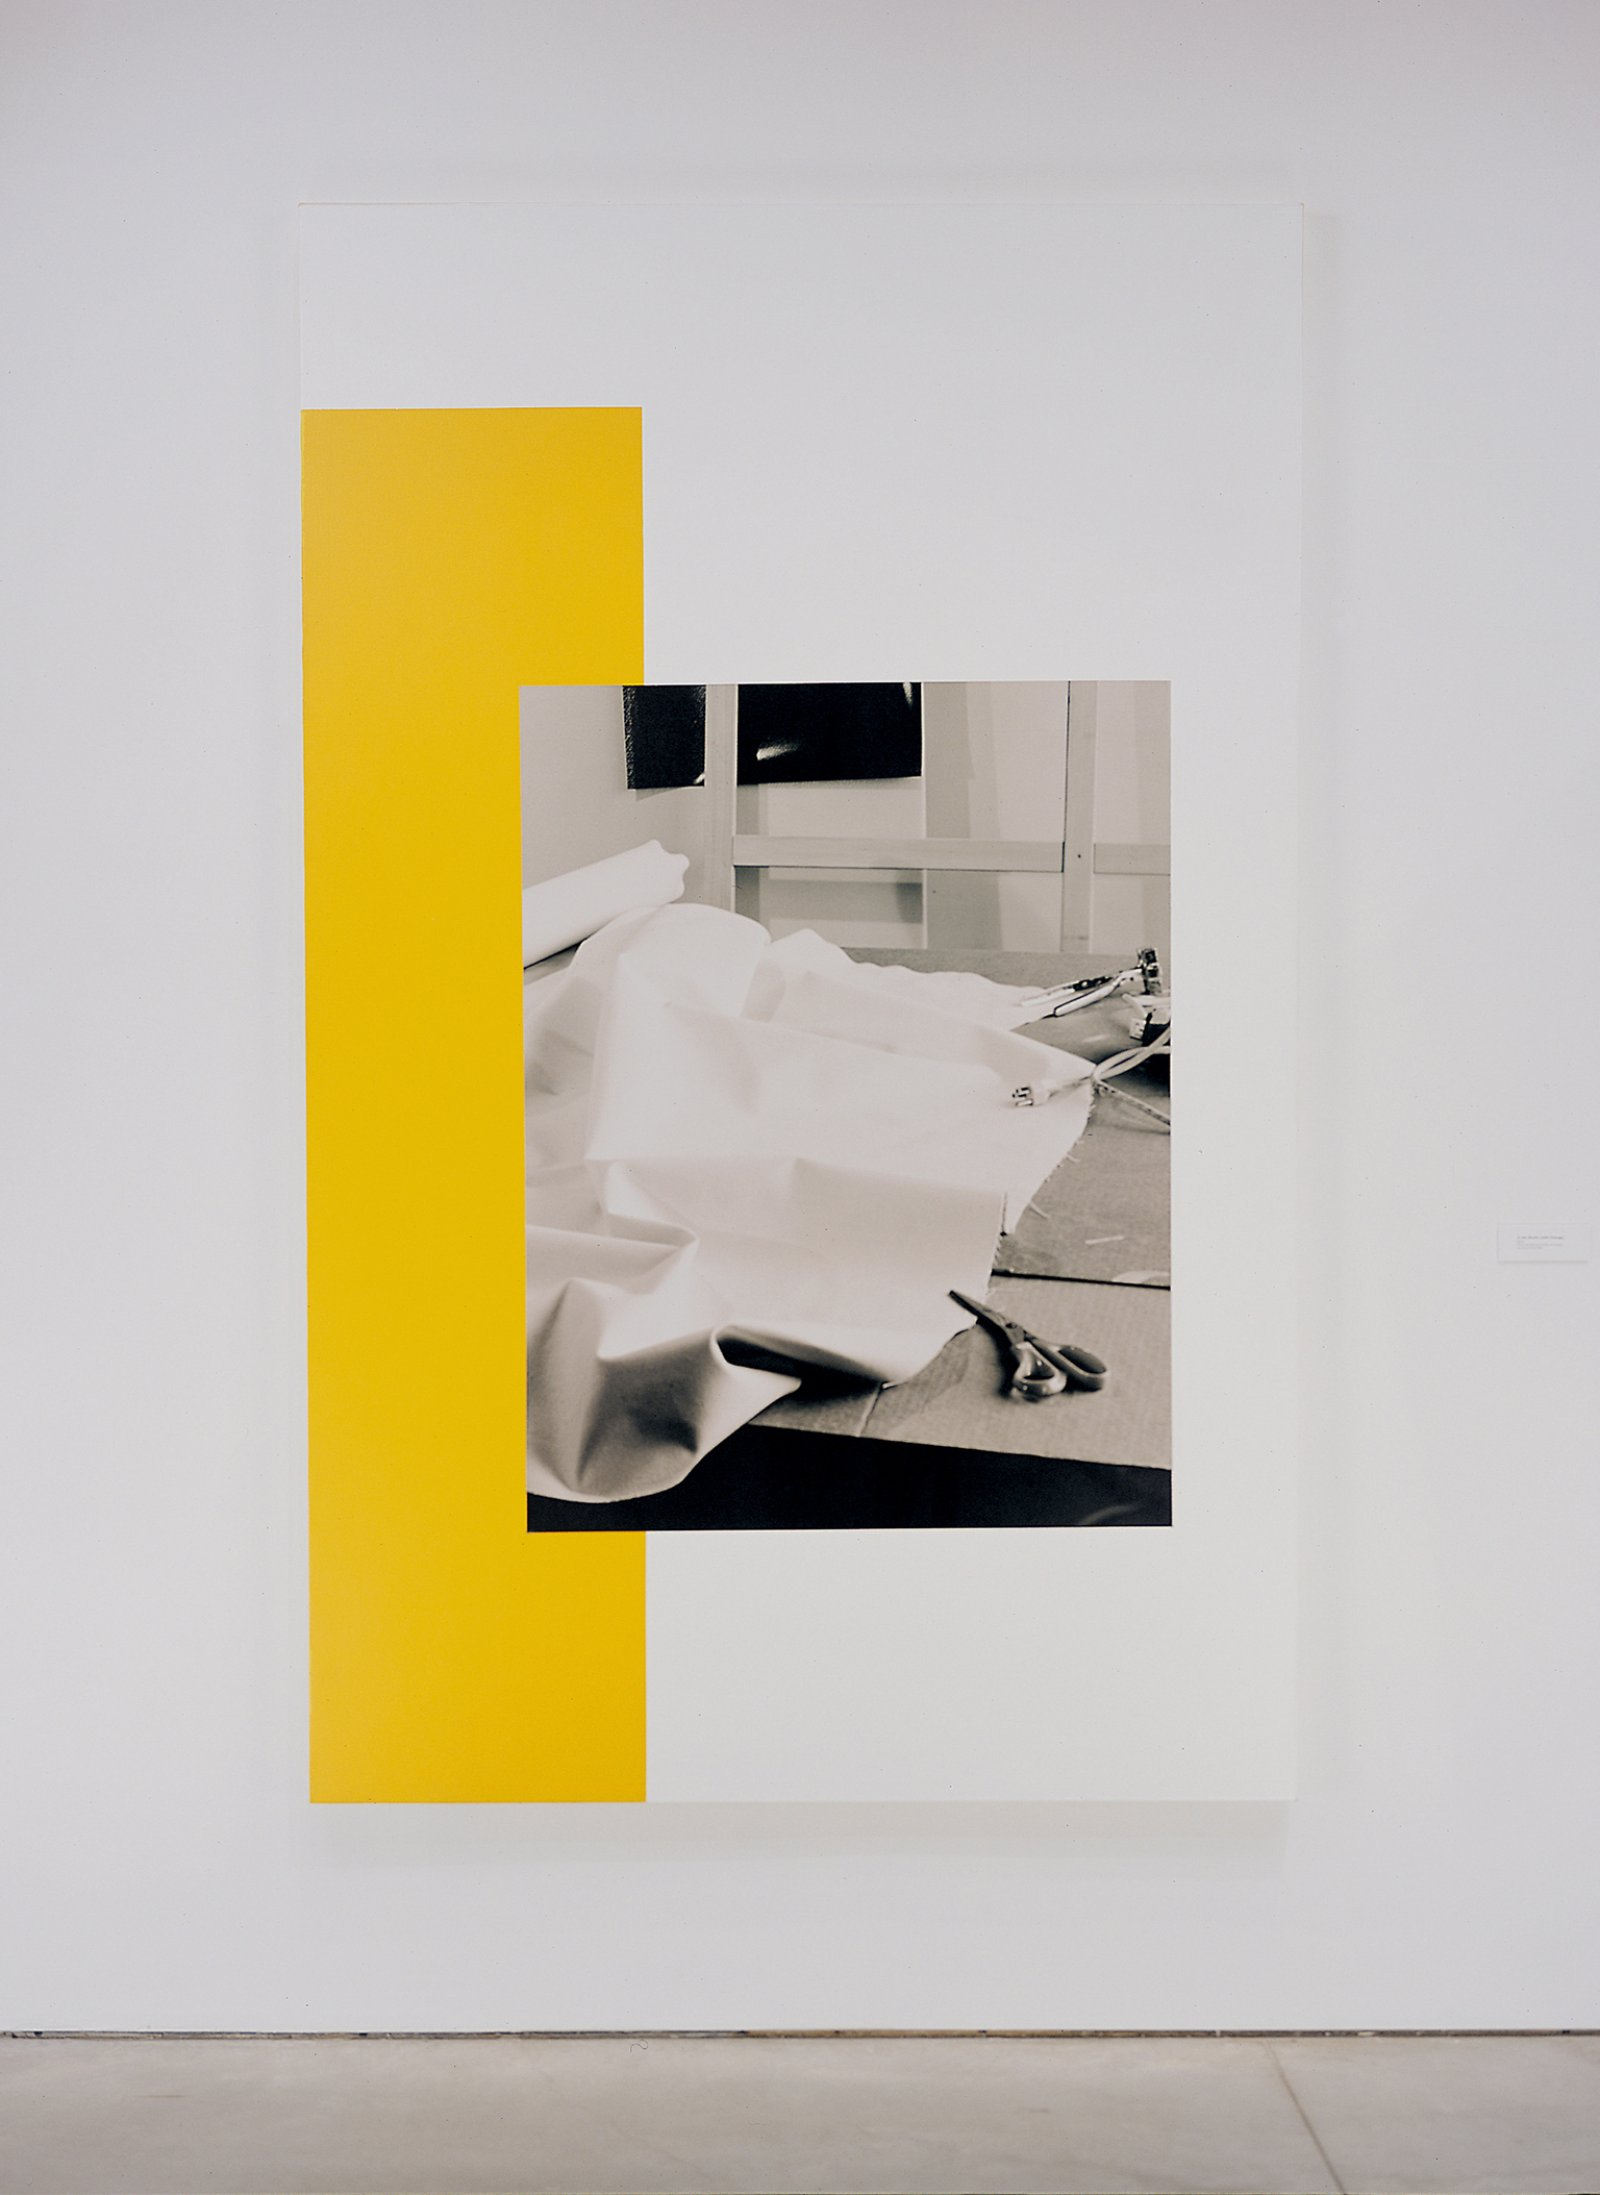 Ian Wallace,In the Studio (with orange), 2002,photolaminate and acrylic on canvas,96 x 60 in. (244 x 152 cm)